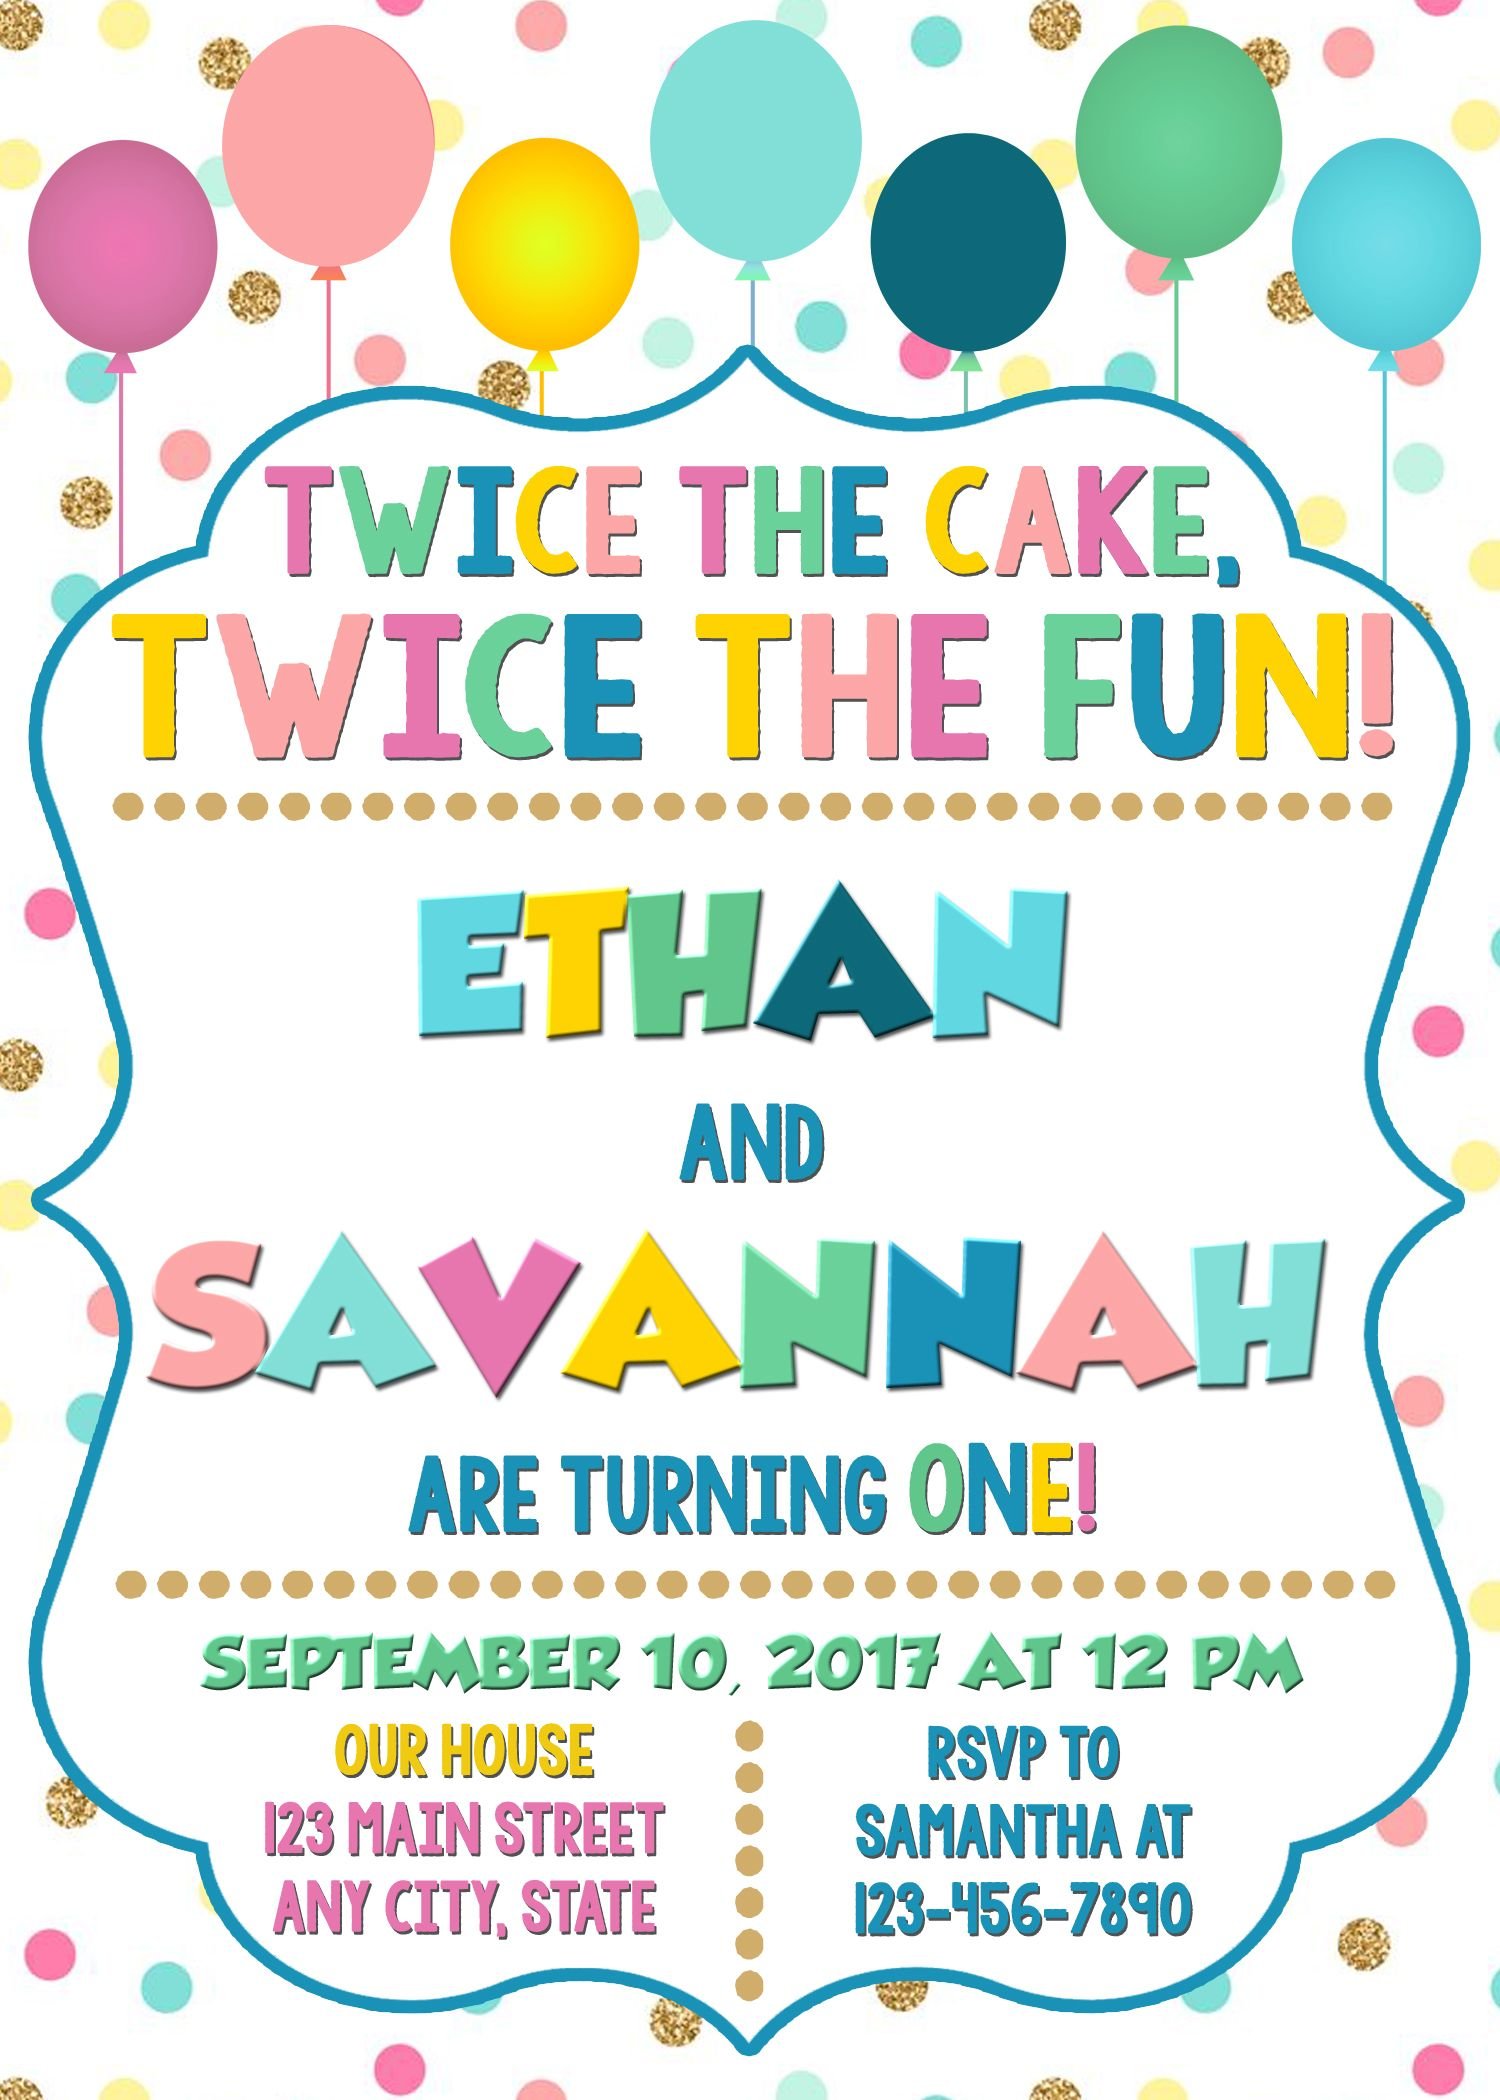 Joint combined birthday party invitation twins birthday invitation joint combined birthday party invitation twins birthday invitation siblings party twice the fun stopboris Image collections